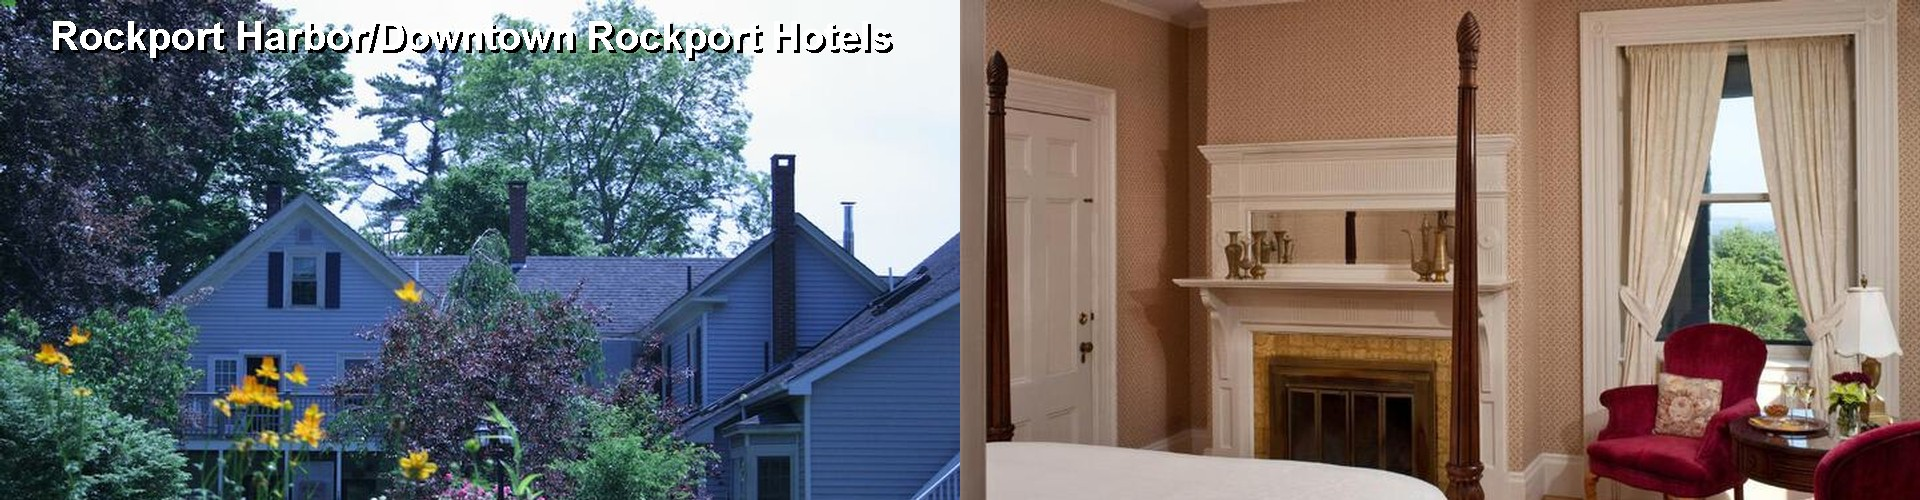 5 Best Hotels near Rockport Harbor/Downtown Rockport